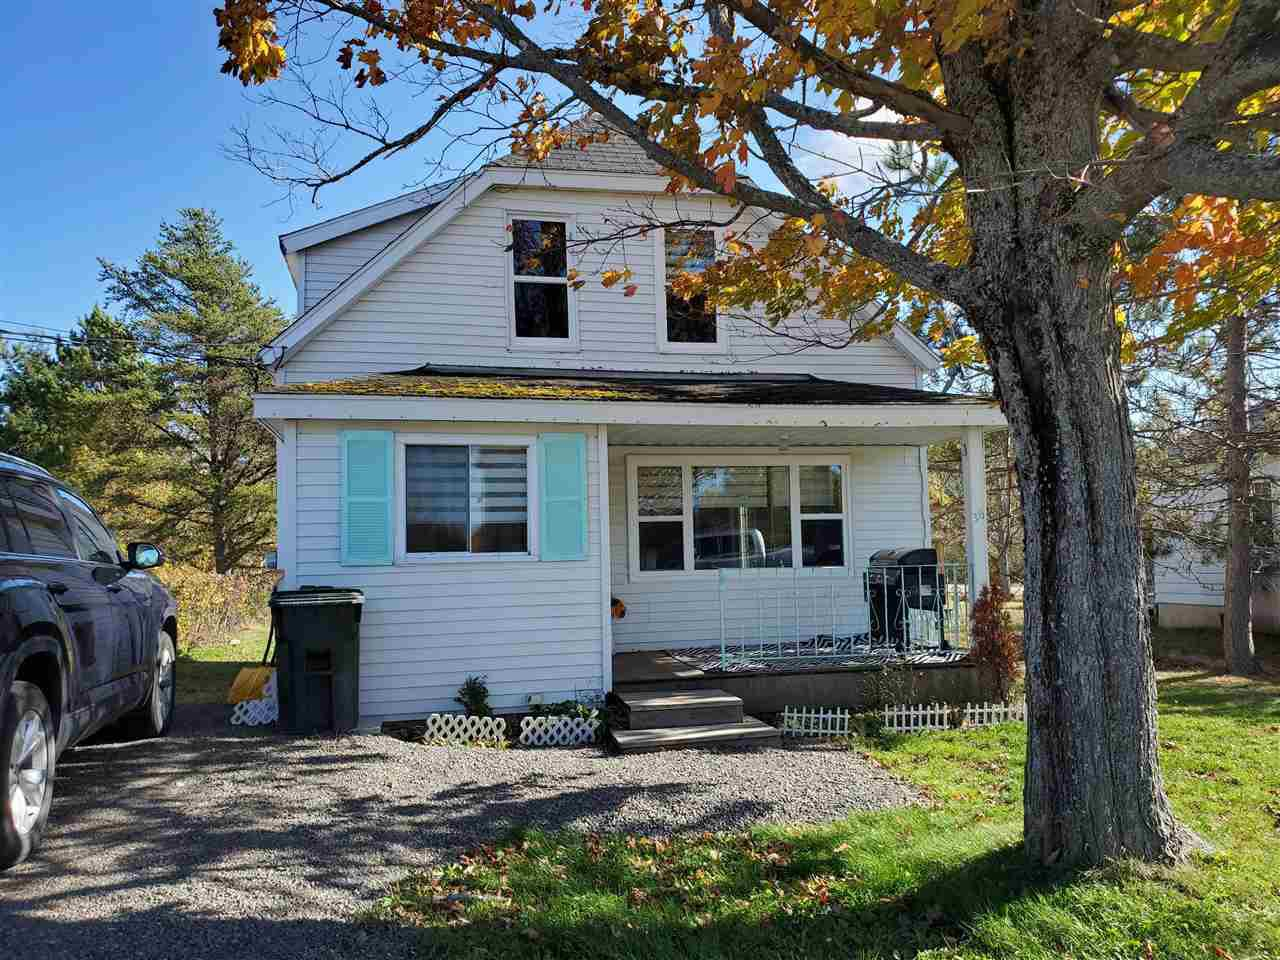 Main Photo: 36 Cowan Street in Springhill: 102S-South Of Hwy 104, Parrsboro and area Residential for sale (Northern Region)  : MLS®# 202021740